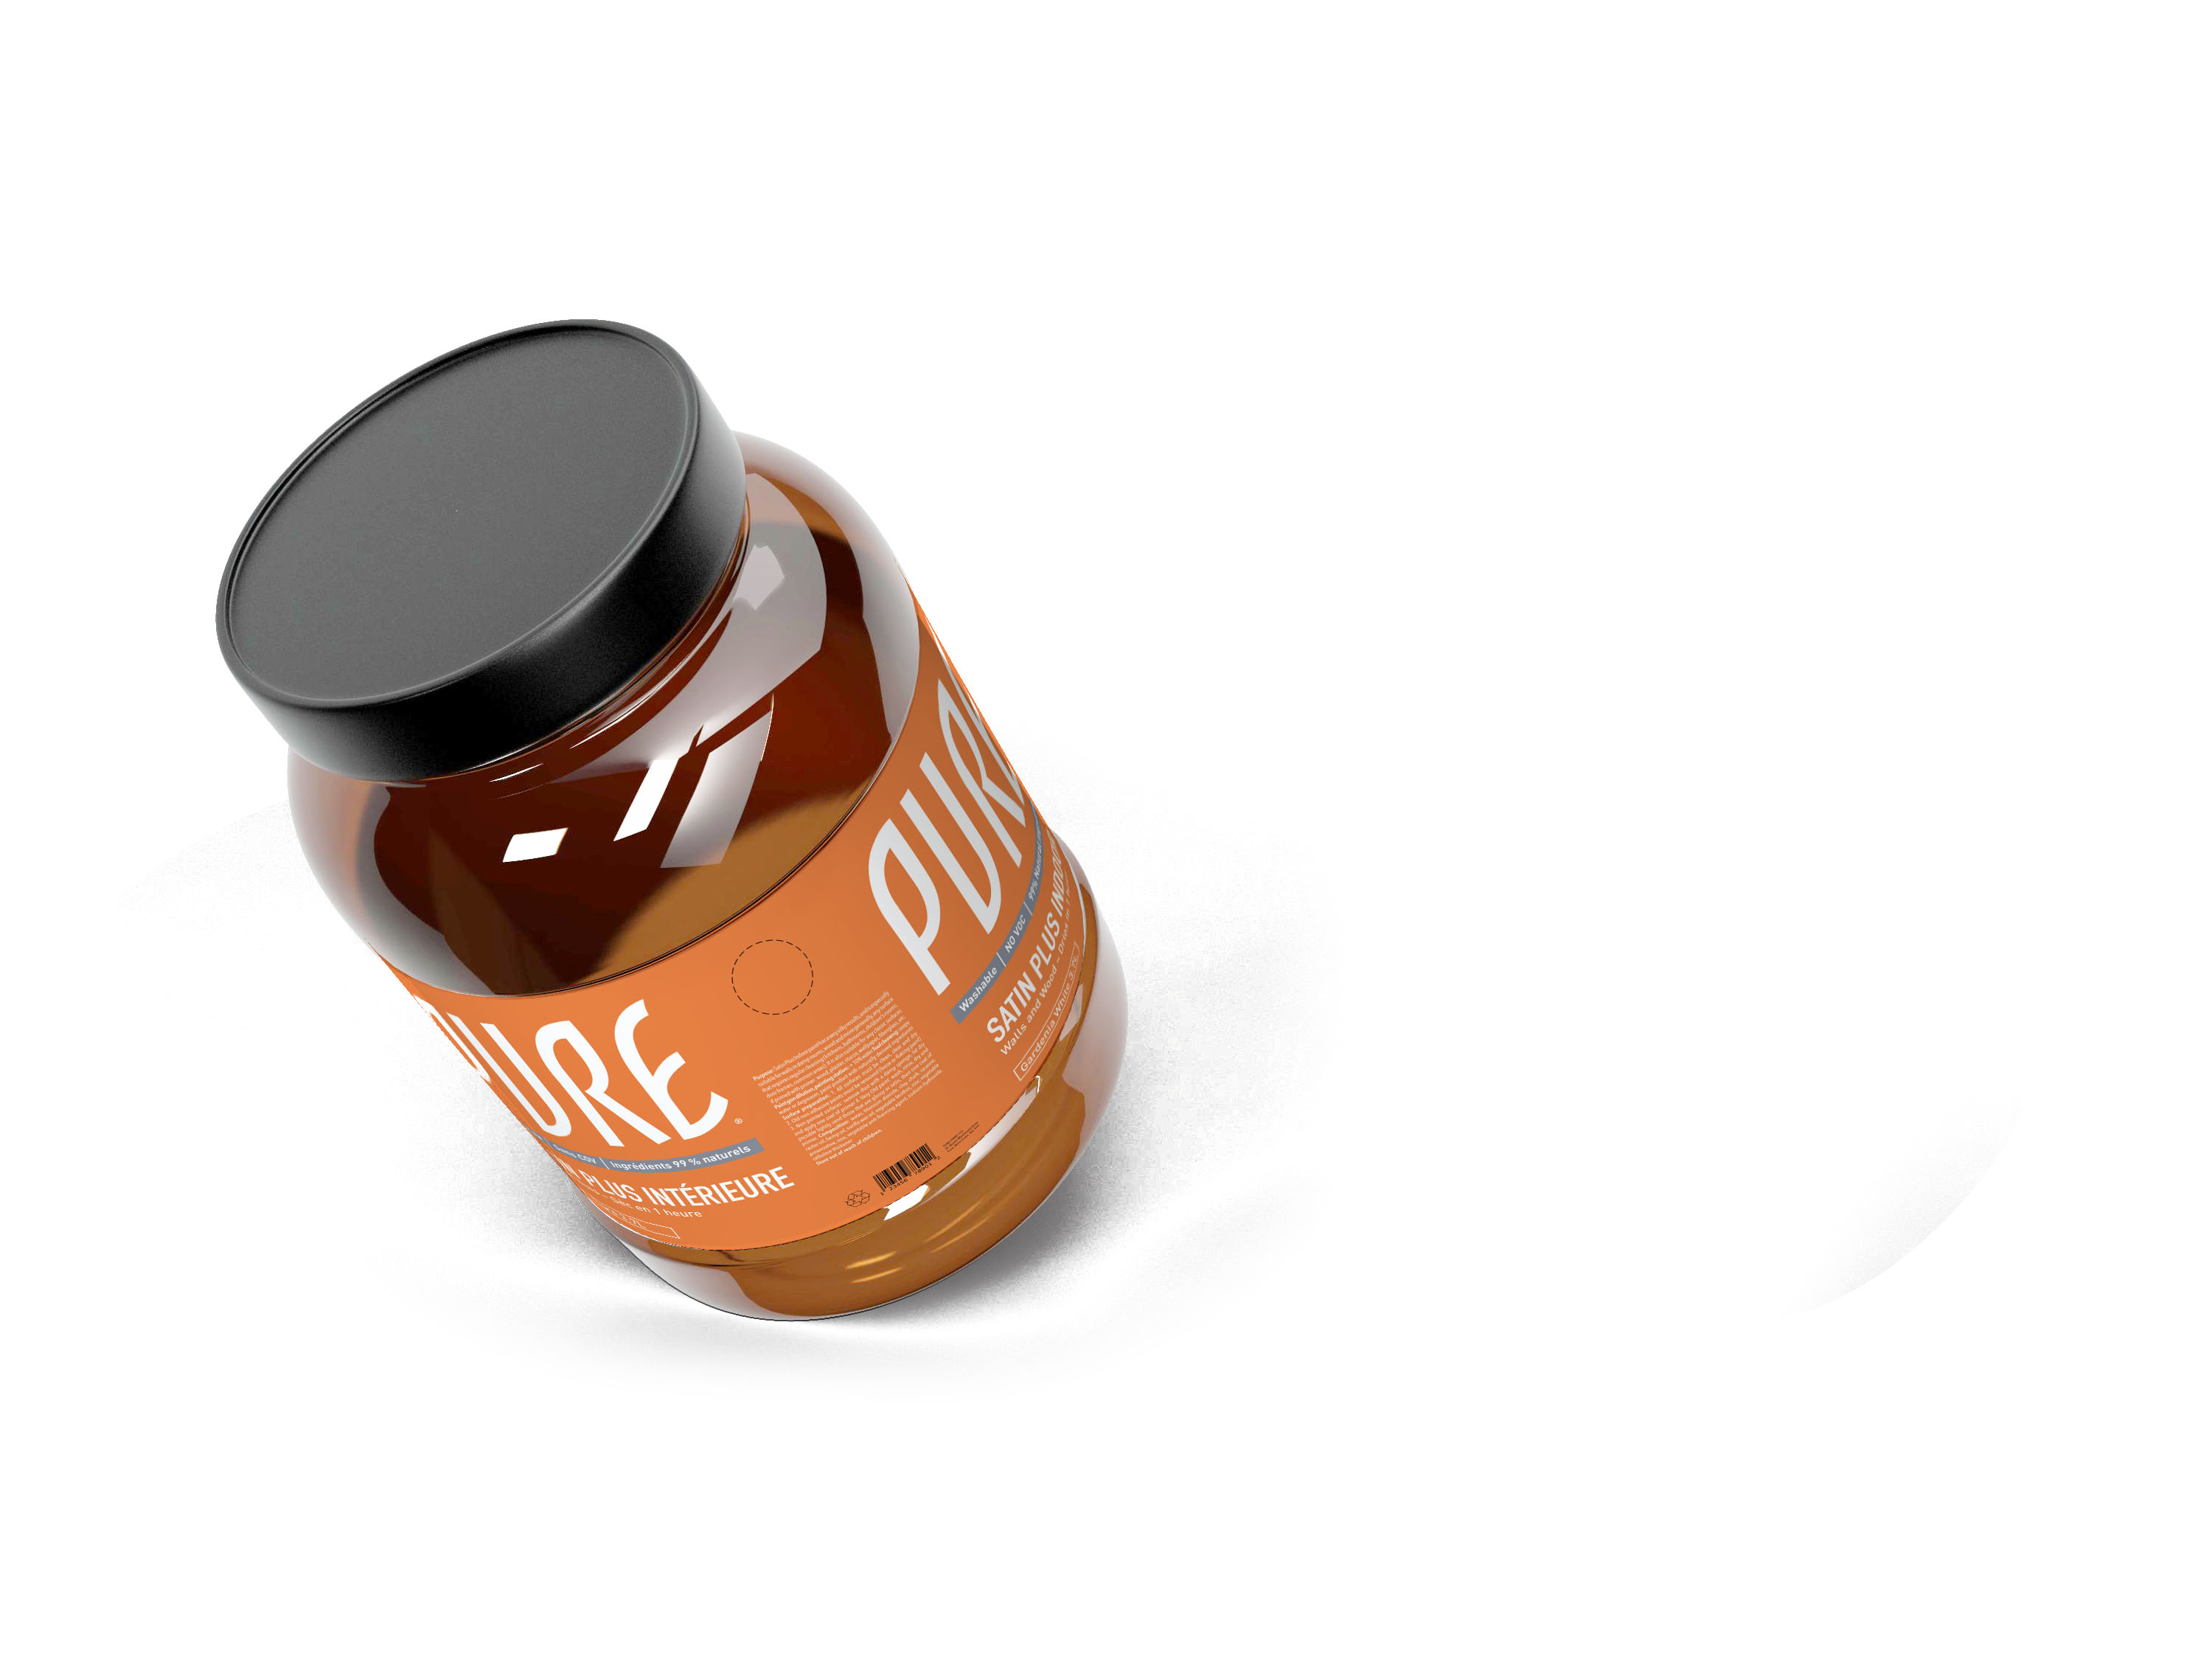 Free Honey Sugar Label Mockup